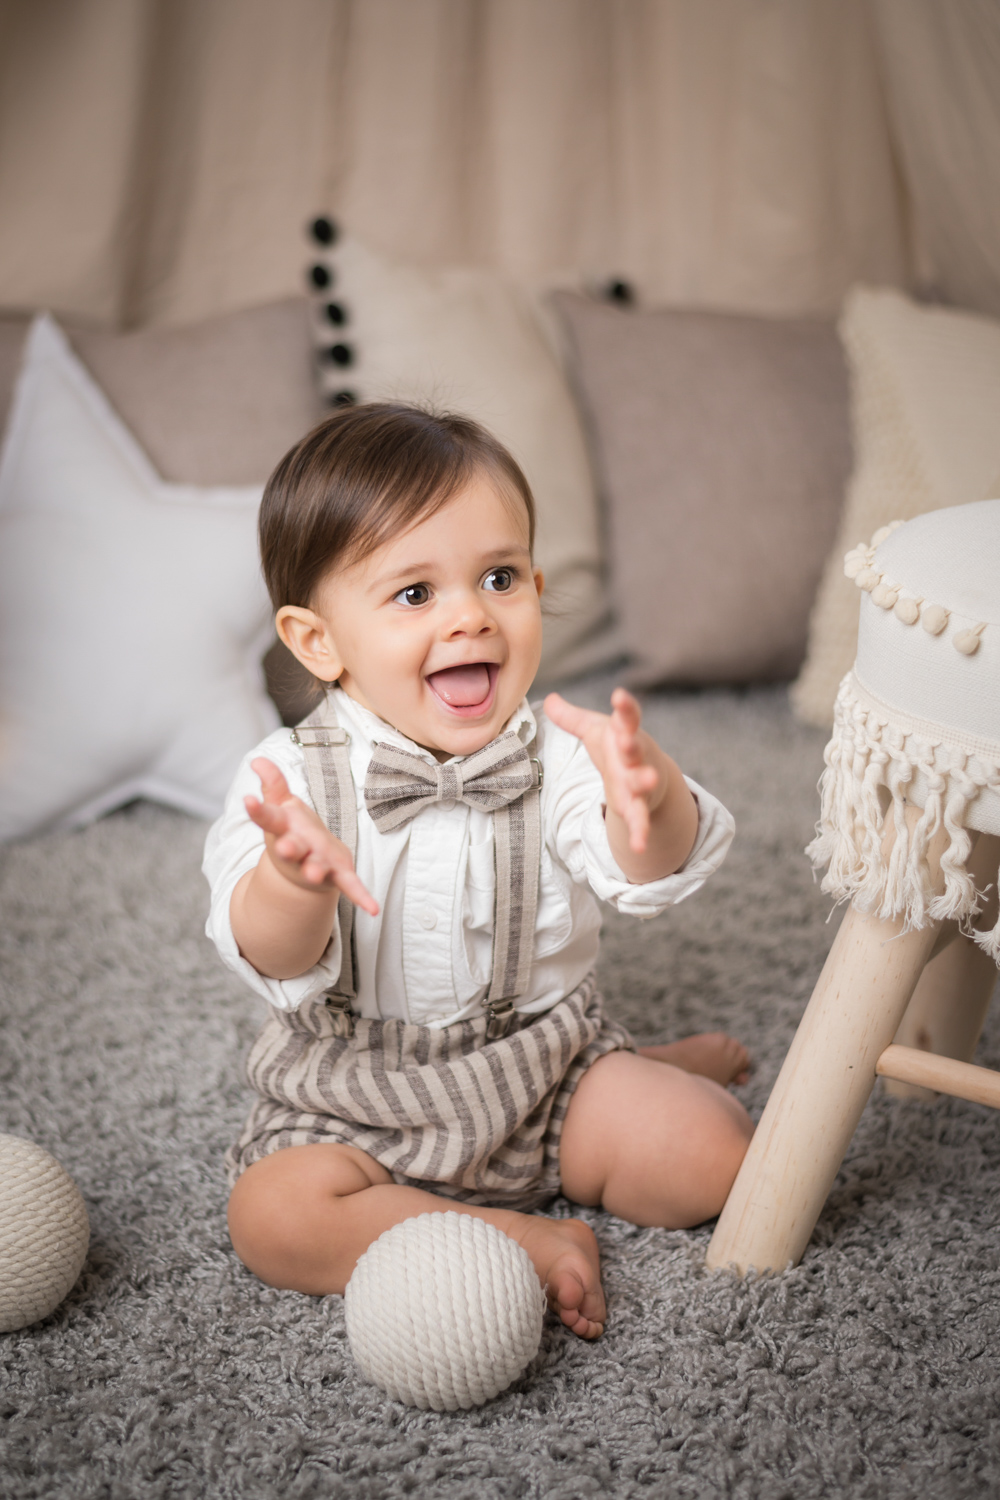 Luca play with prop balls during a baby photoshoot.